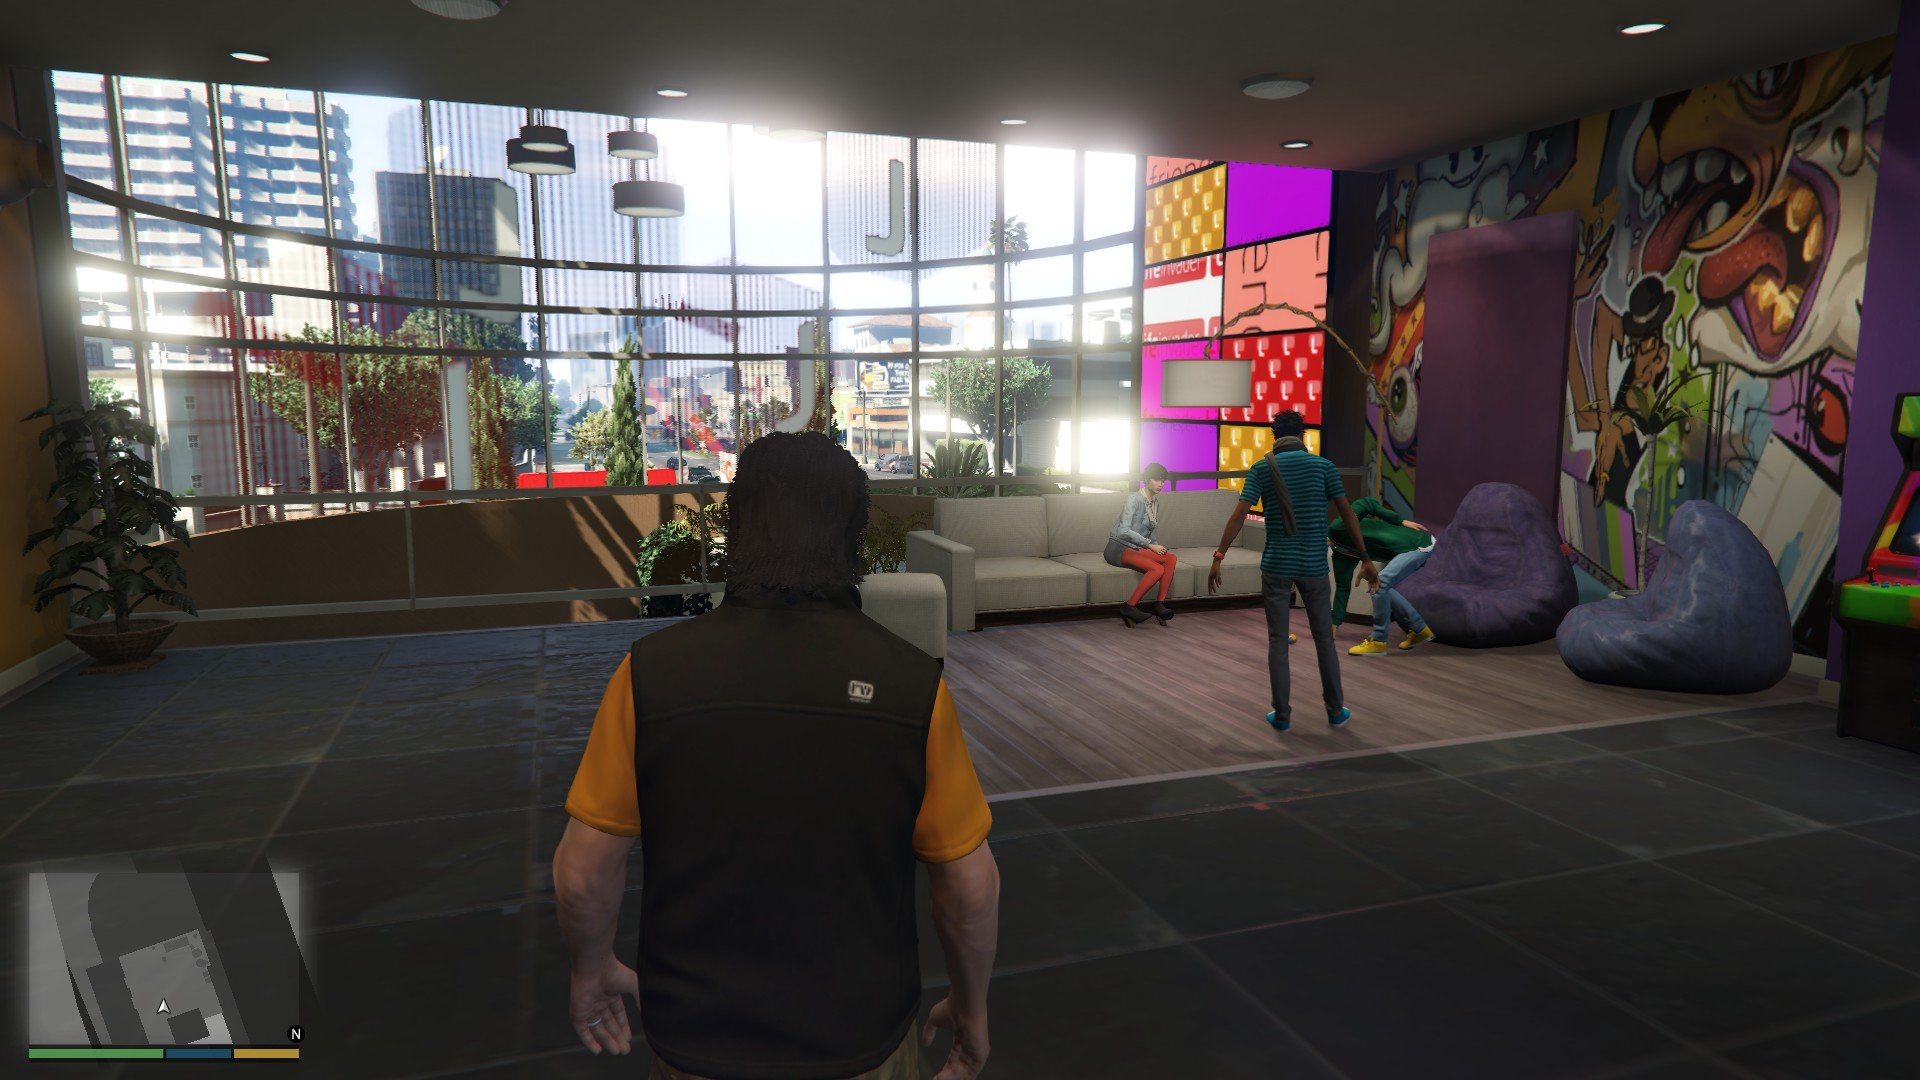 Gta 5 Wallpaper Hd 1080p 1080p Vs 1440p Vs 4k Which Resolution Is Best For